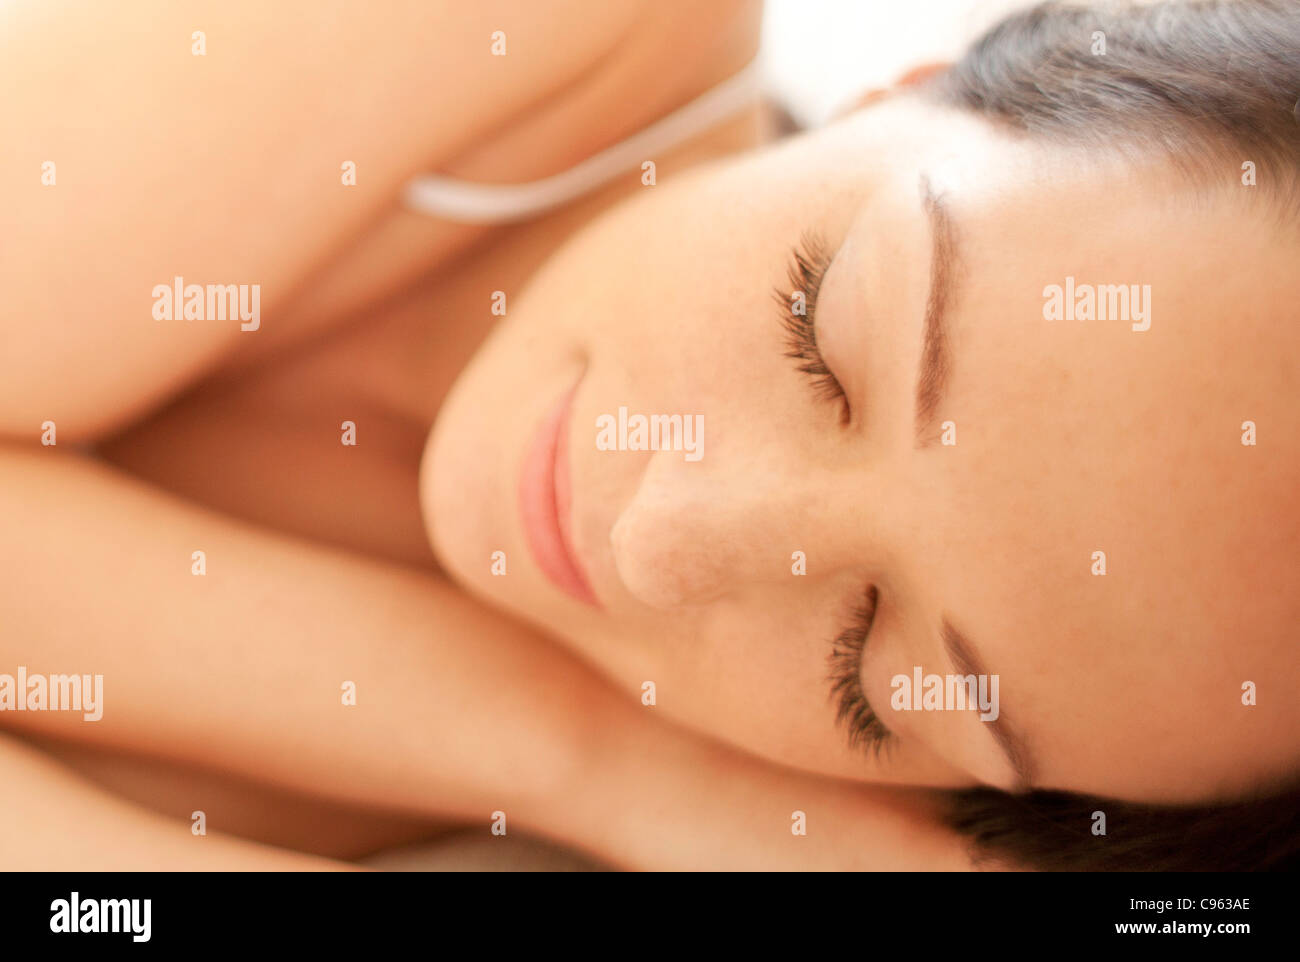 Woman sleeping close-up. - Stock Image